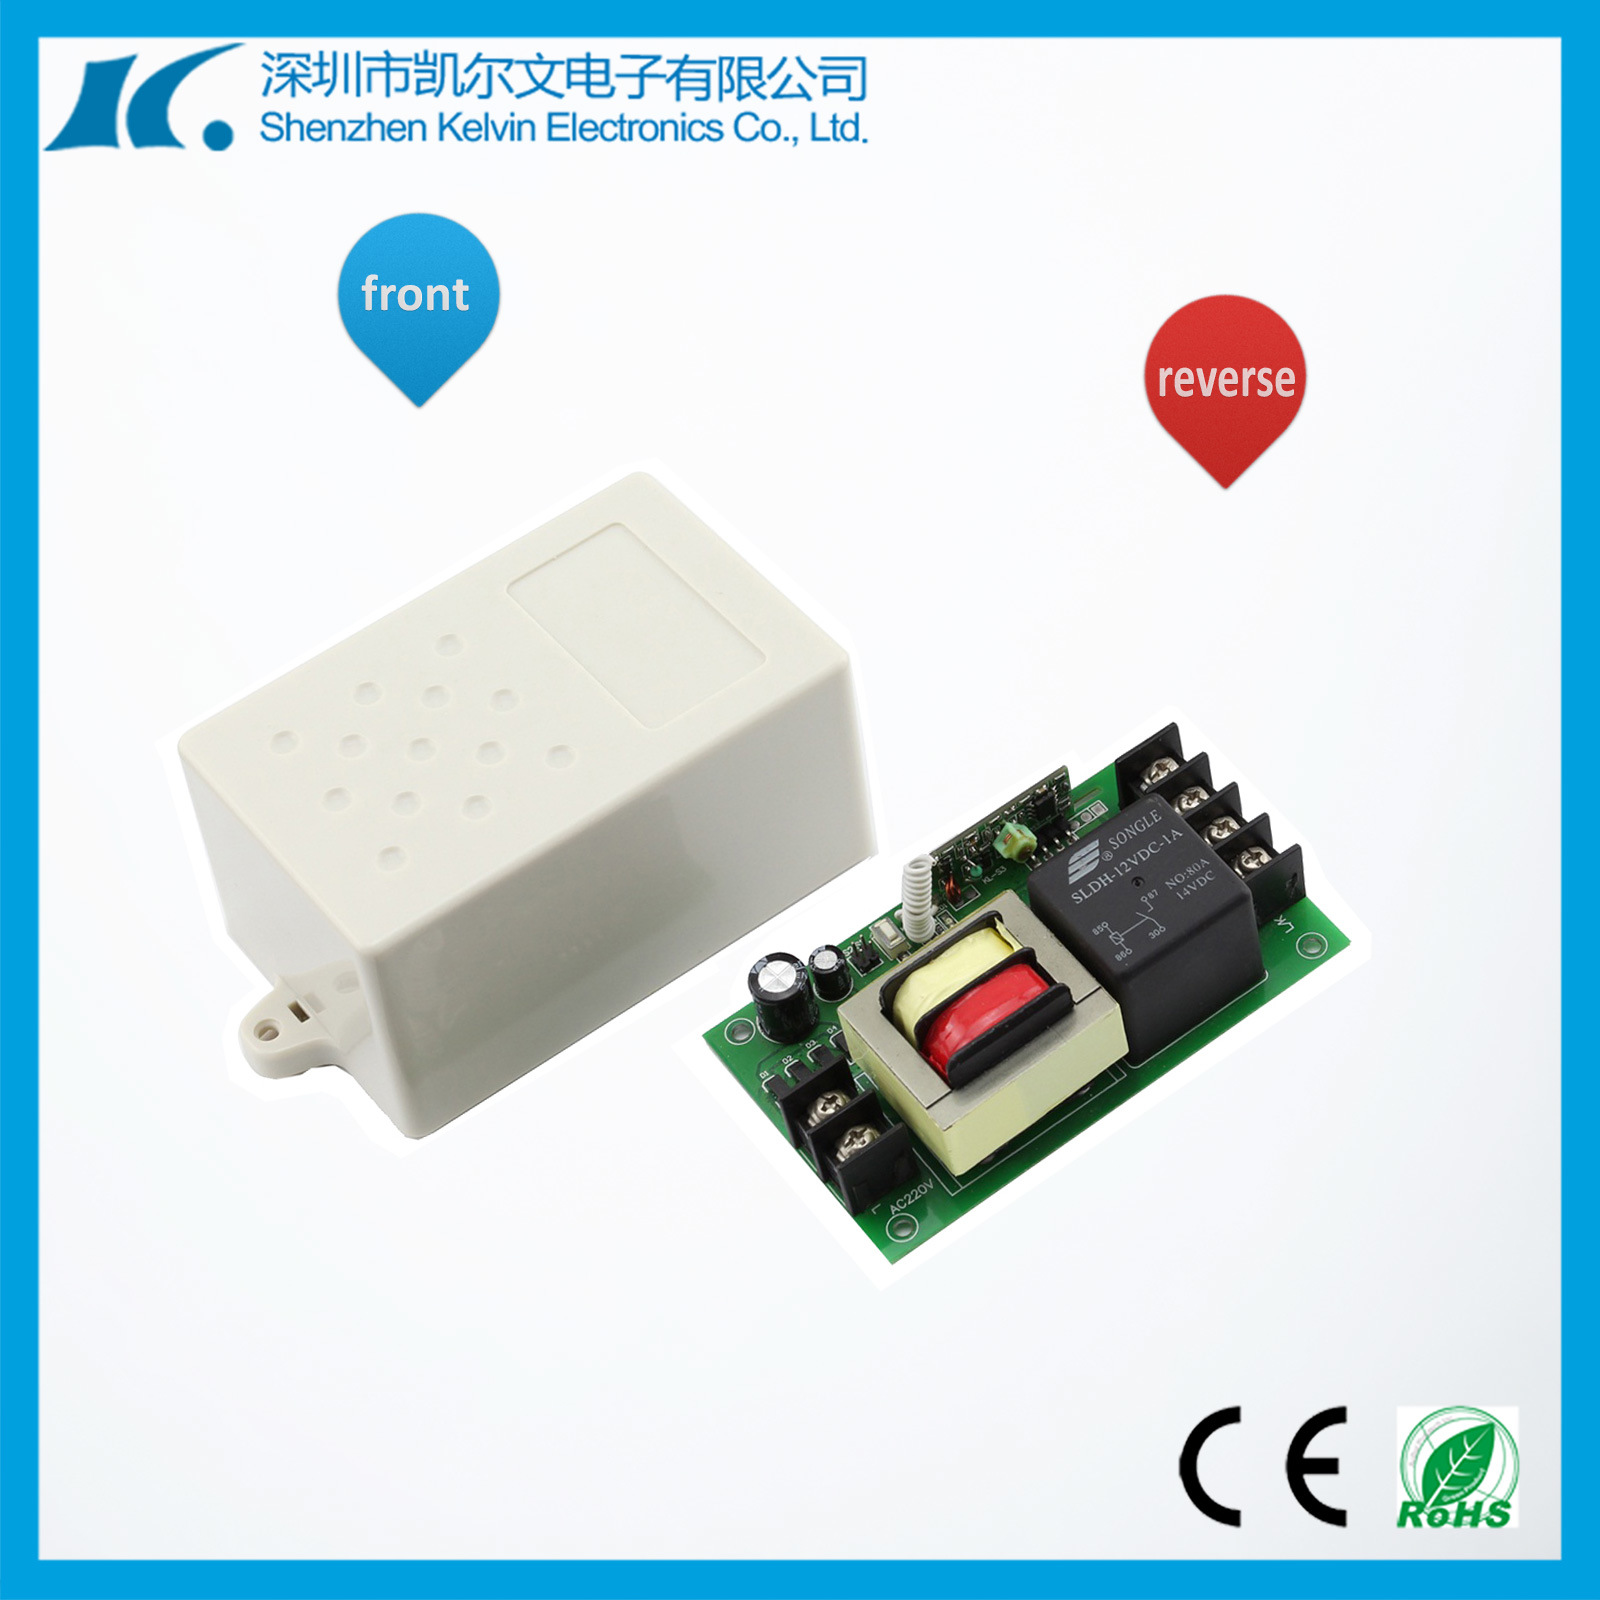 110/220V 1-CH High Power Remote Controller for Water Pump